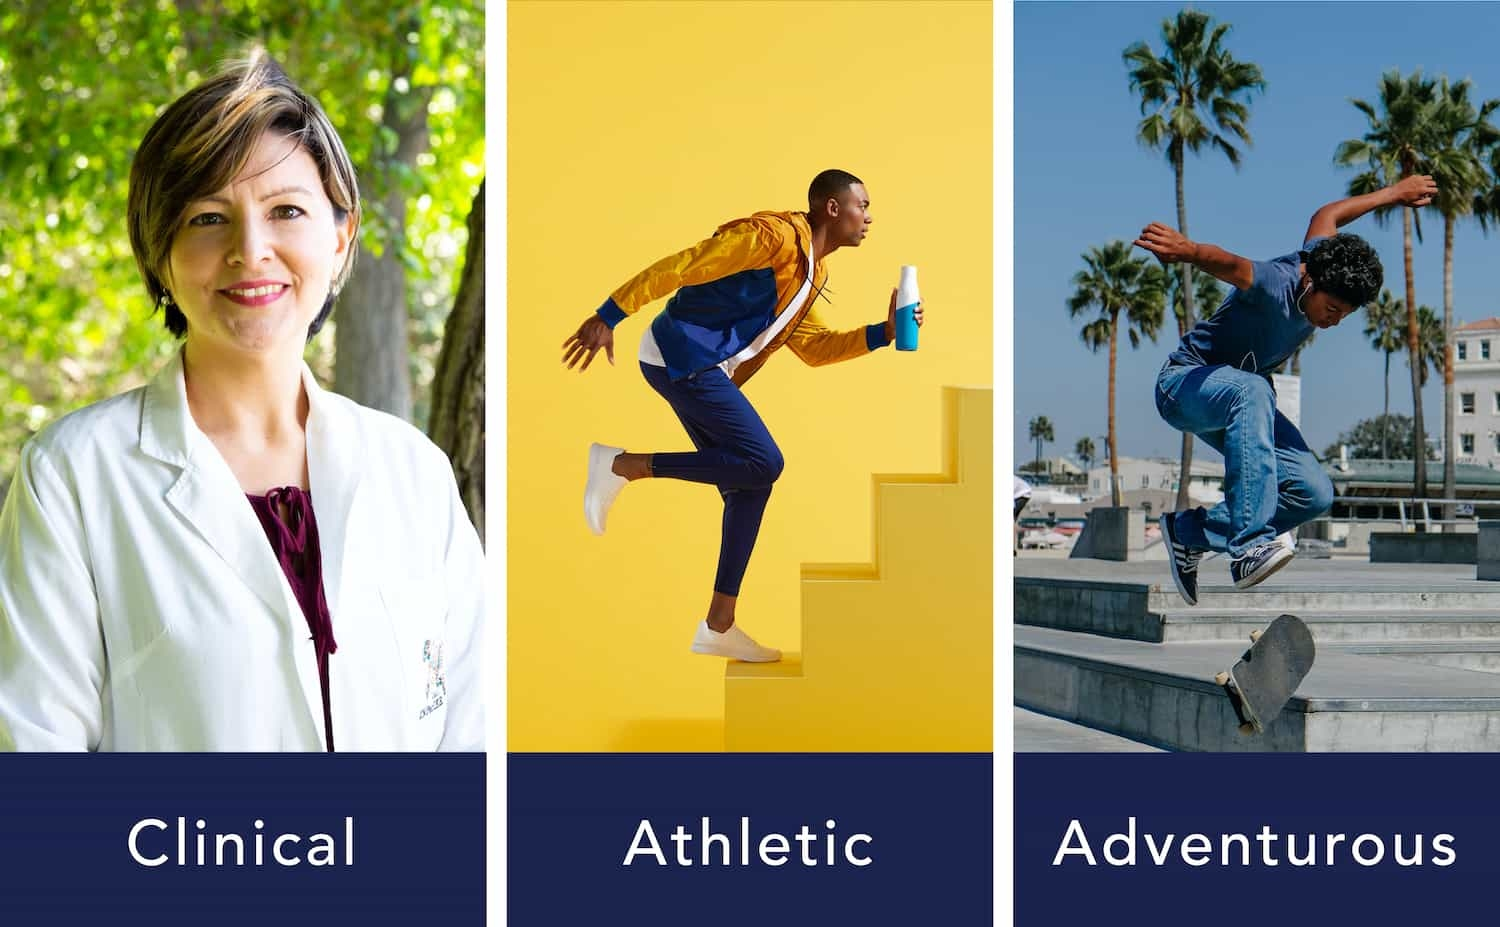 Three different types of images: clinical, athletic, and adventurous.